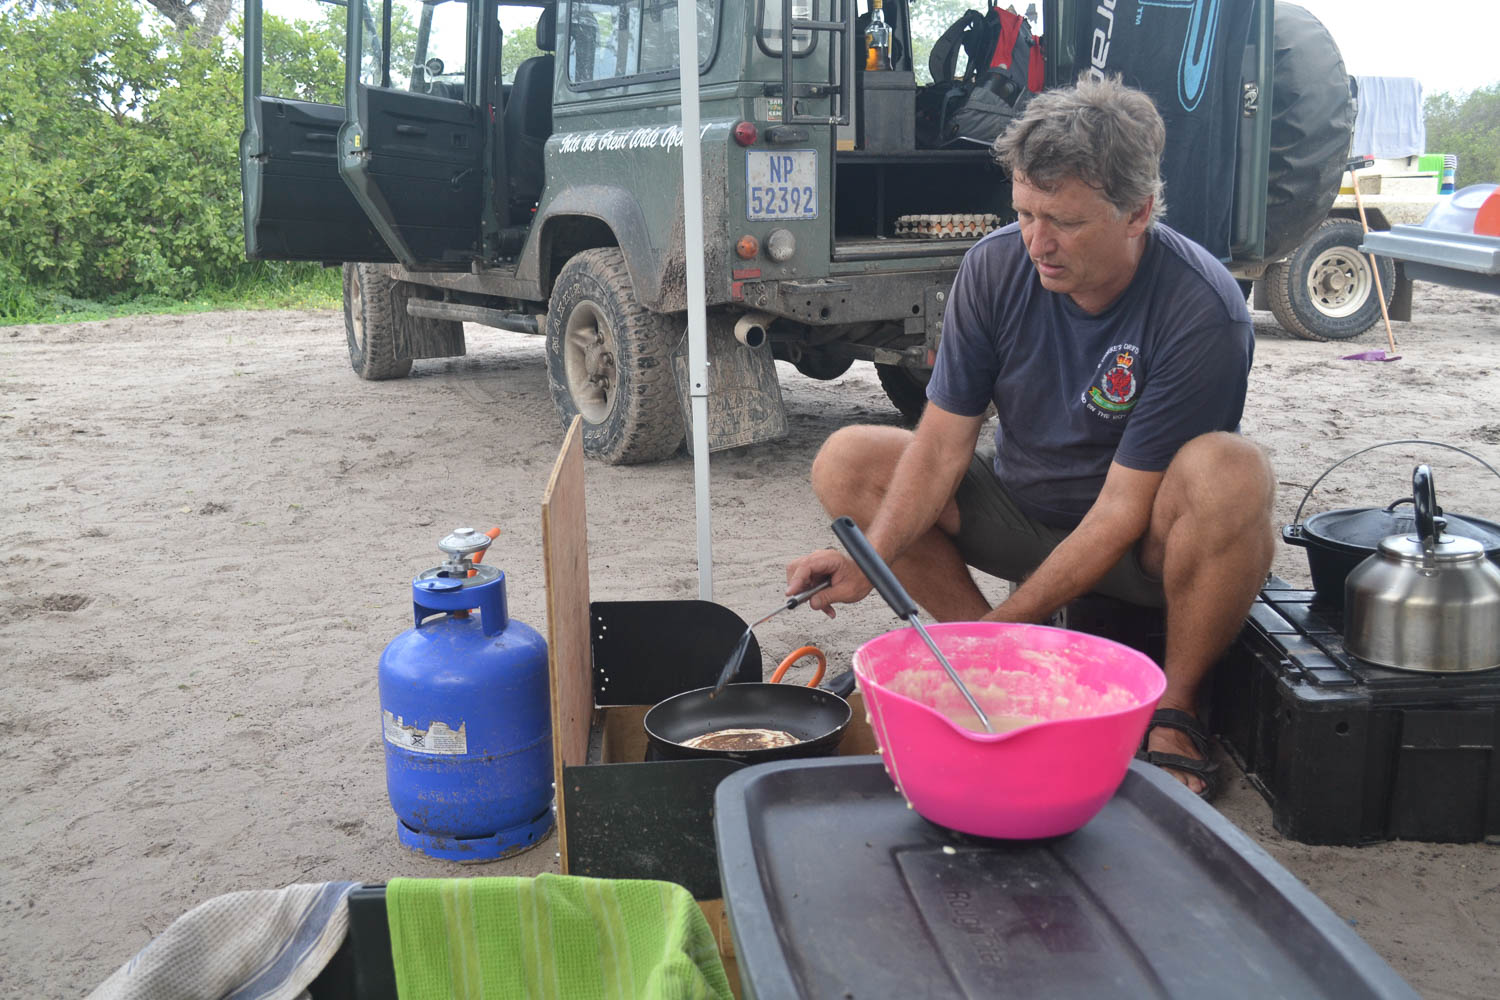 We take care of all your meals with South Africa Overland 4x4 Tours